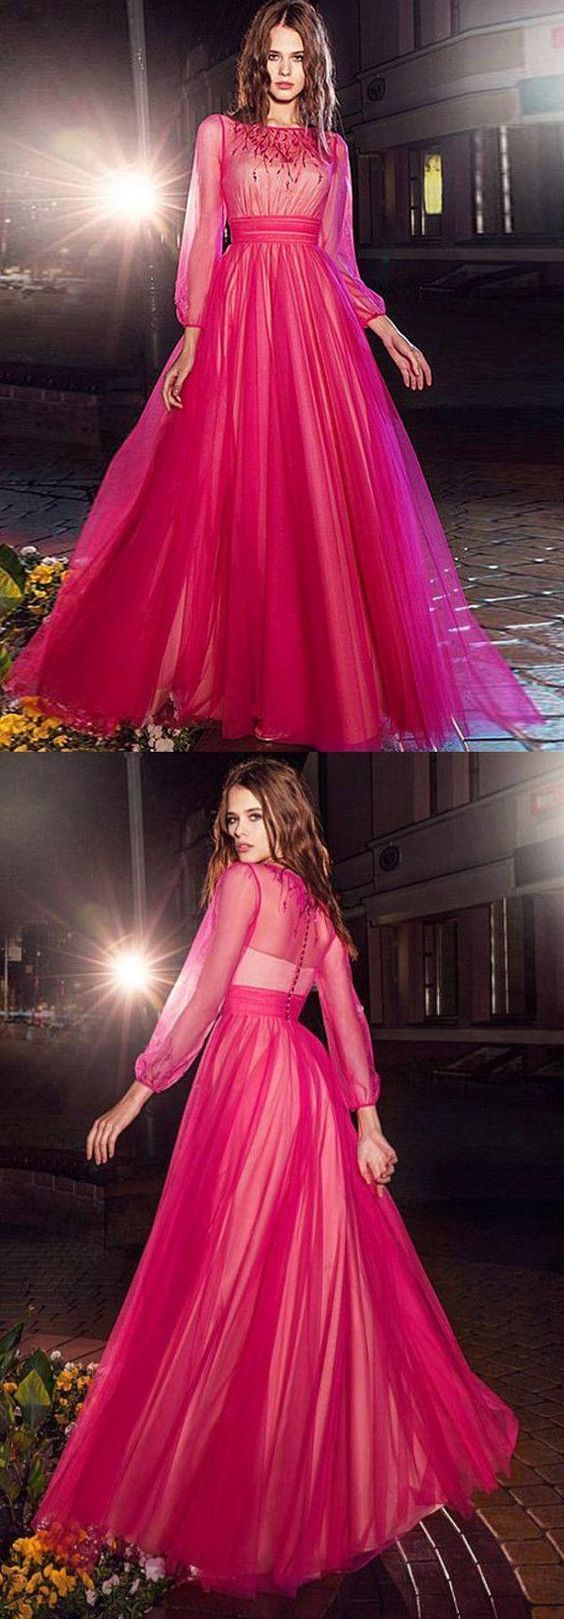 Simple Prom Dresses, Long Sleeves Prom Dresses, Prom Dresses For Cheap, Prom